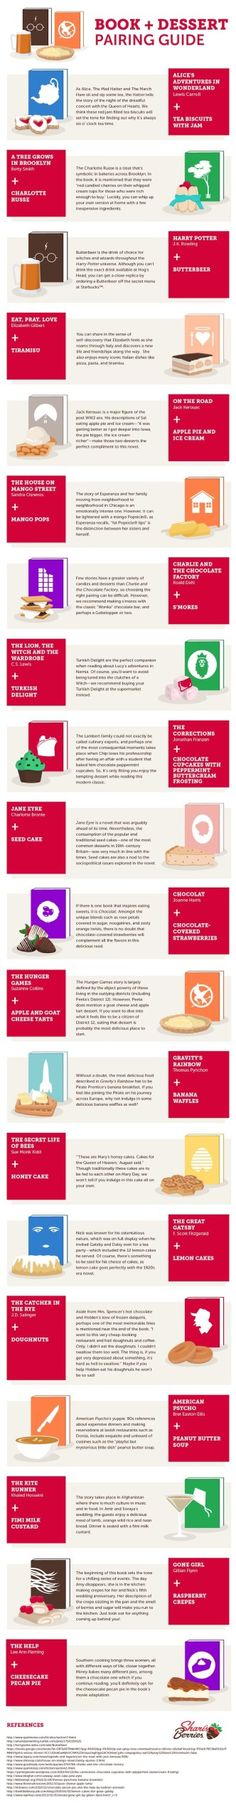 Book and dessert pairing guide - full infographic